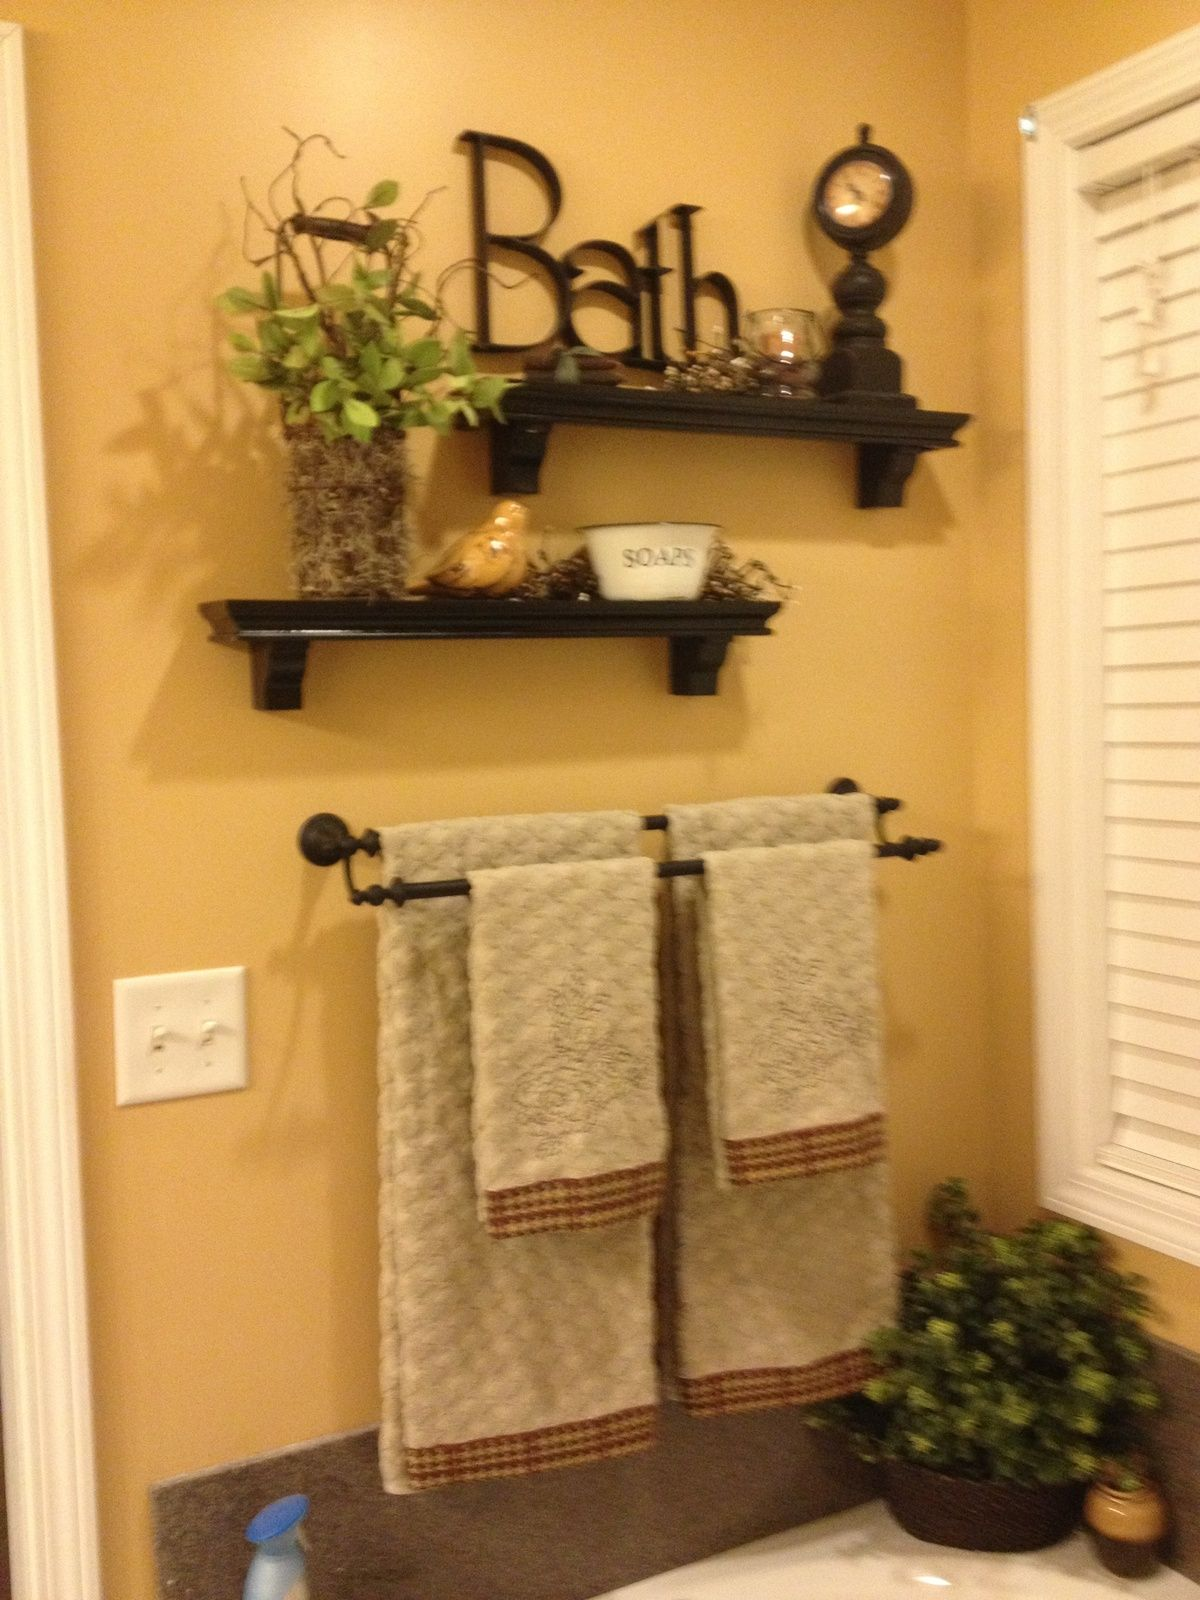 Pin By Cynthia Gallaghercynthia64 On Home Place Bathroom Decor Diy Bathroom Decor Bathroom Makeover